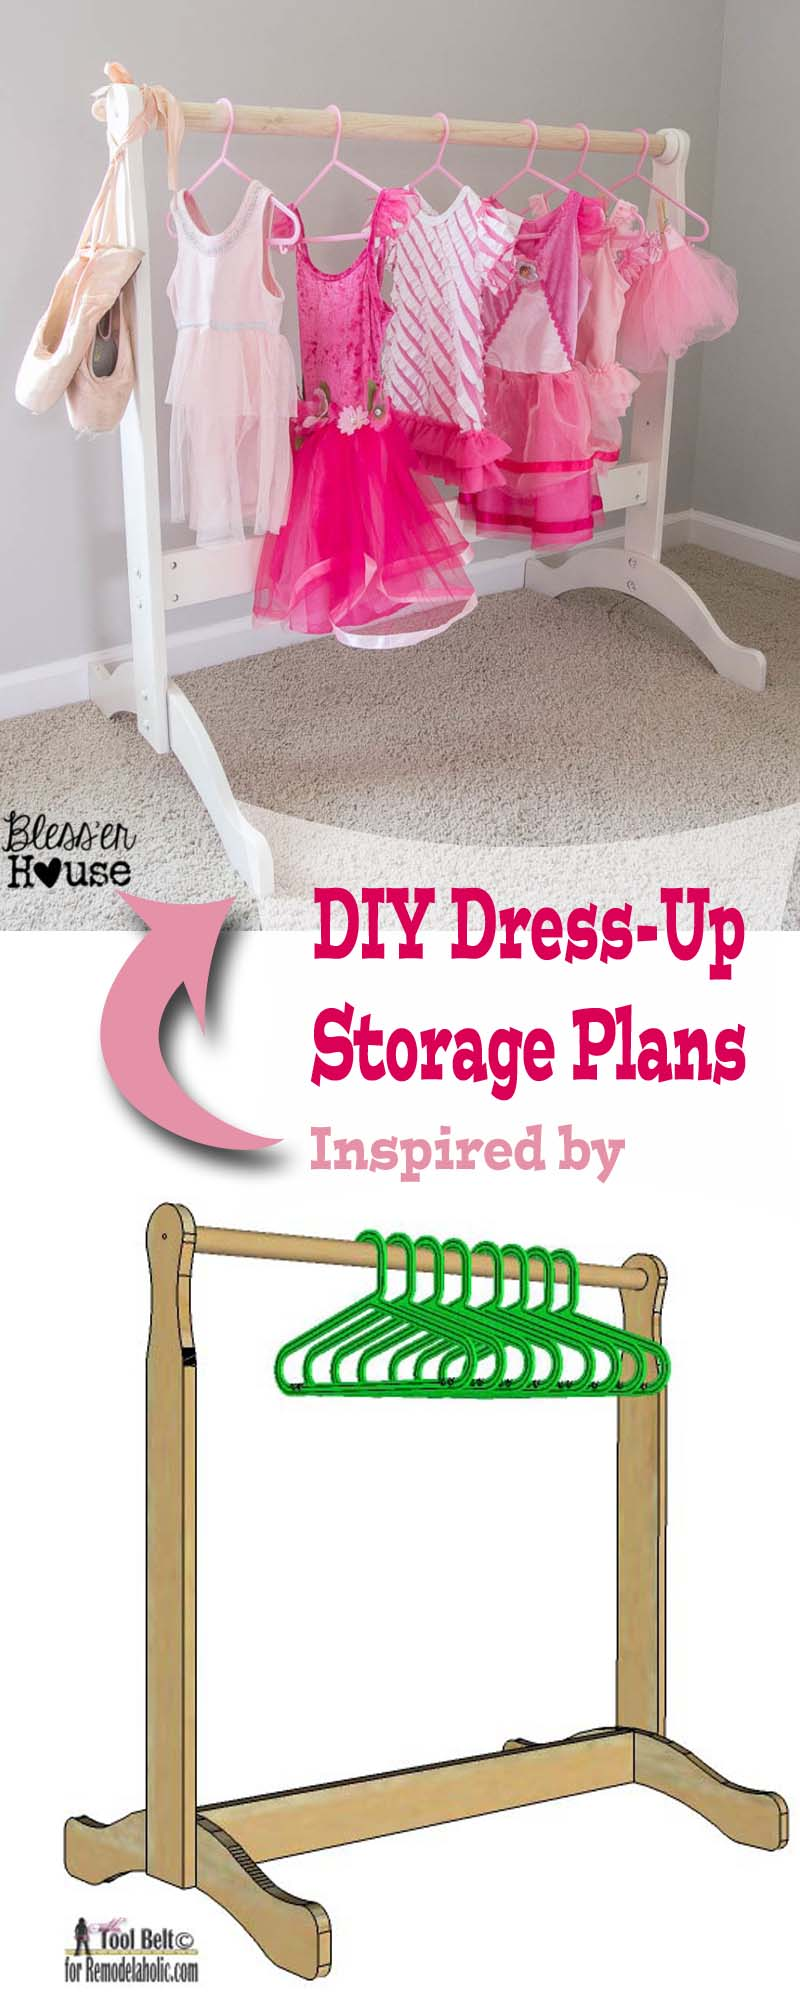 Build Your Little Princess Or Super Hero A Place To Store Their Outfits.  Free DIY